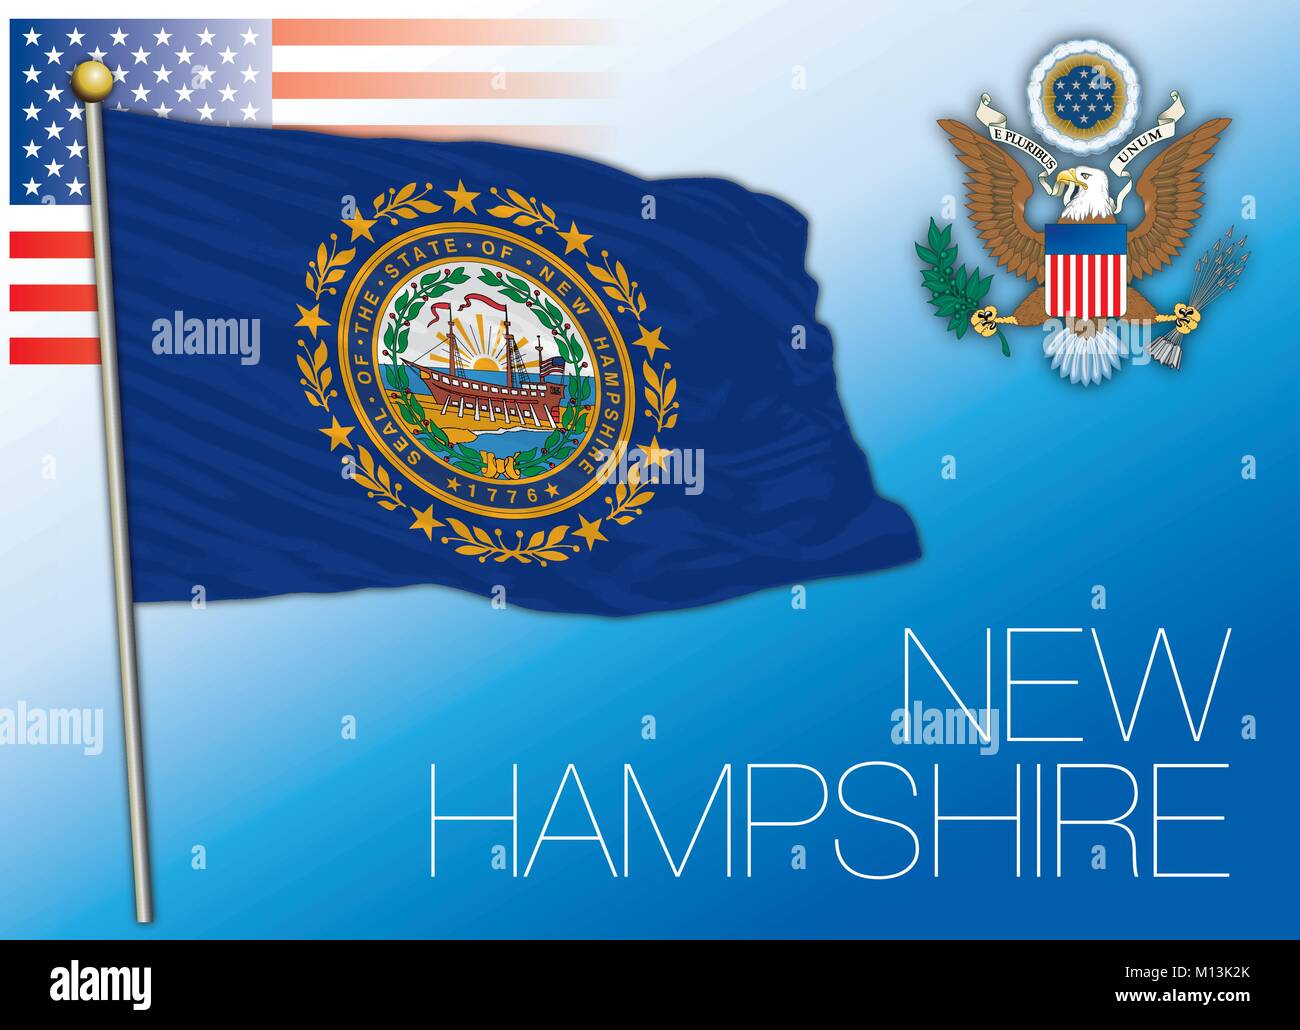 New Hampshire federal state flag, United States - Stock Vector